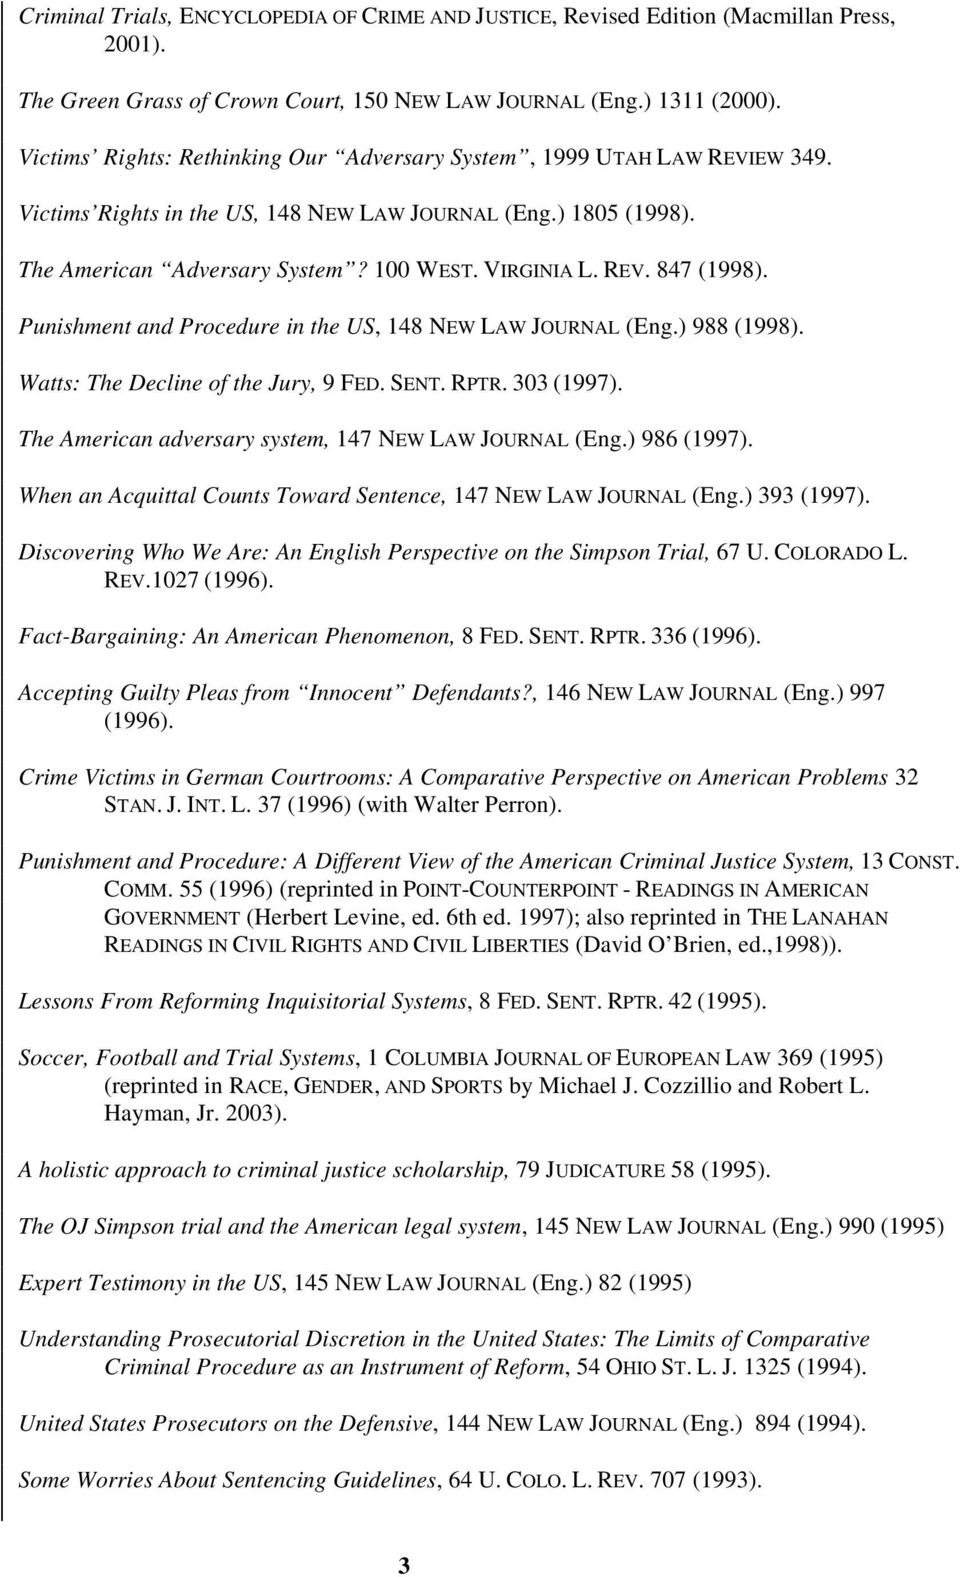 Punishment and Procedure in the US, 148 NEW LAW JOURNAL (Eng.) 988 (1998). Watts: The Decline of the Jury, 9 FED. SENT. RPTR. 303 (1997). The American adversary system, 147 NEW LAW JOURNAL (Eng.